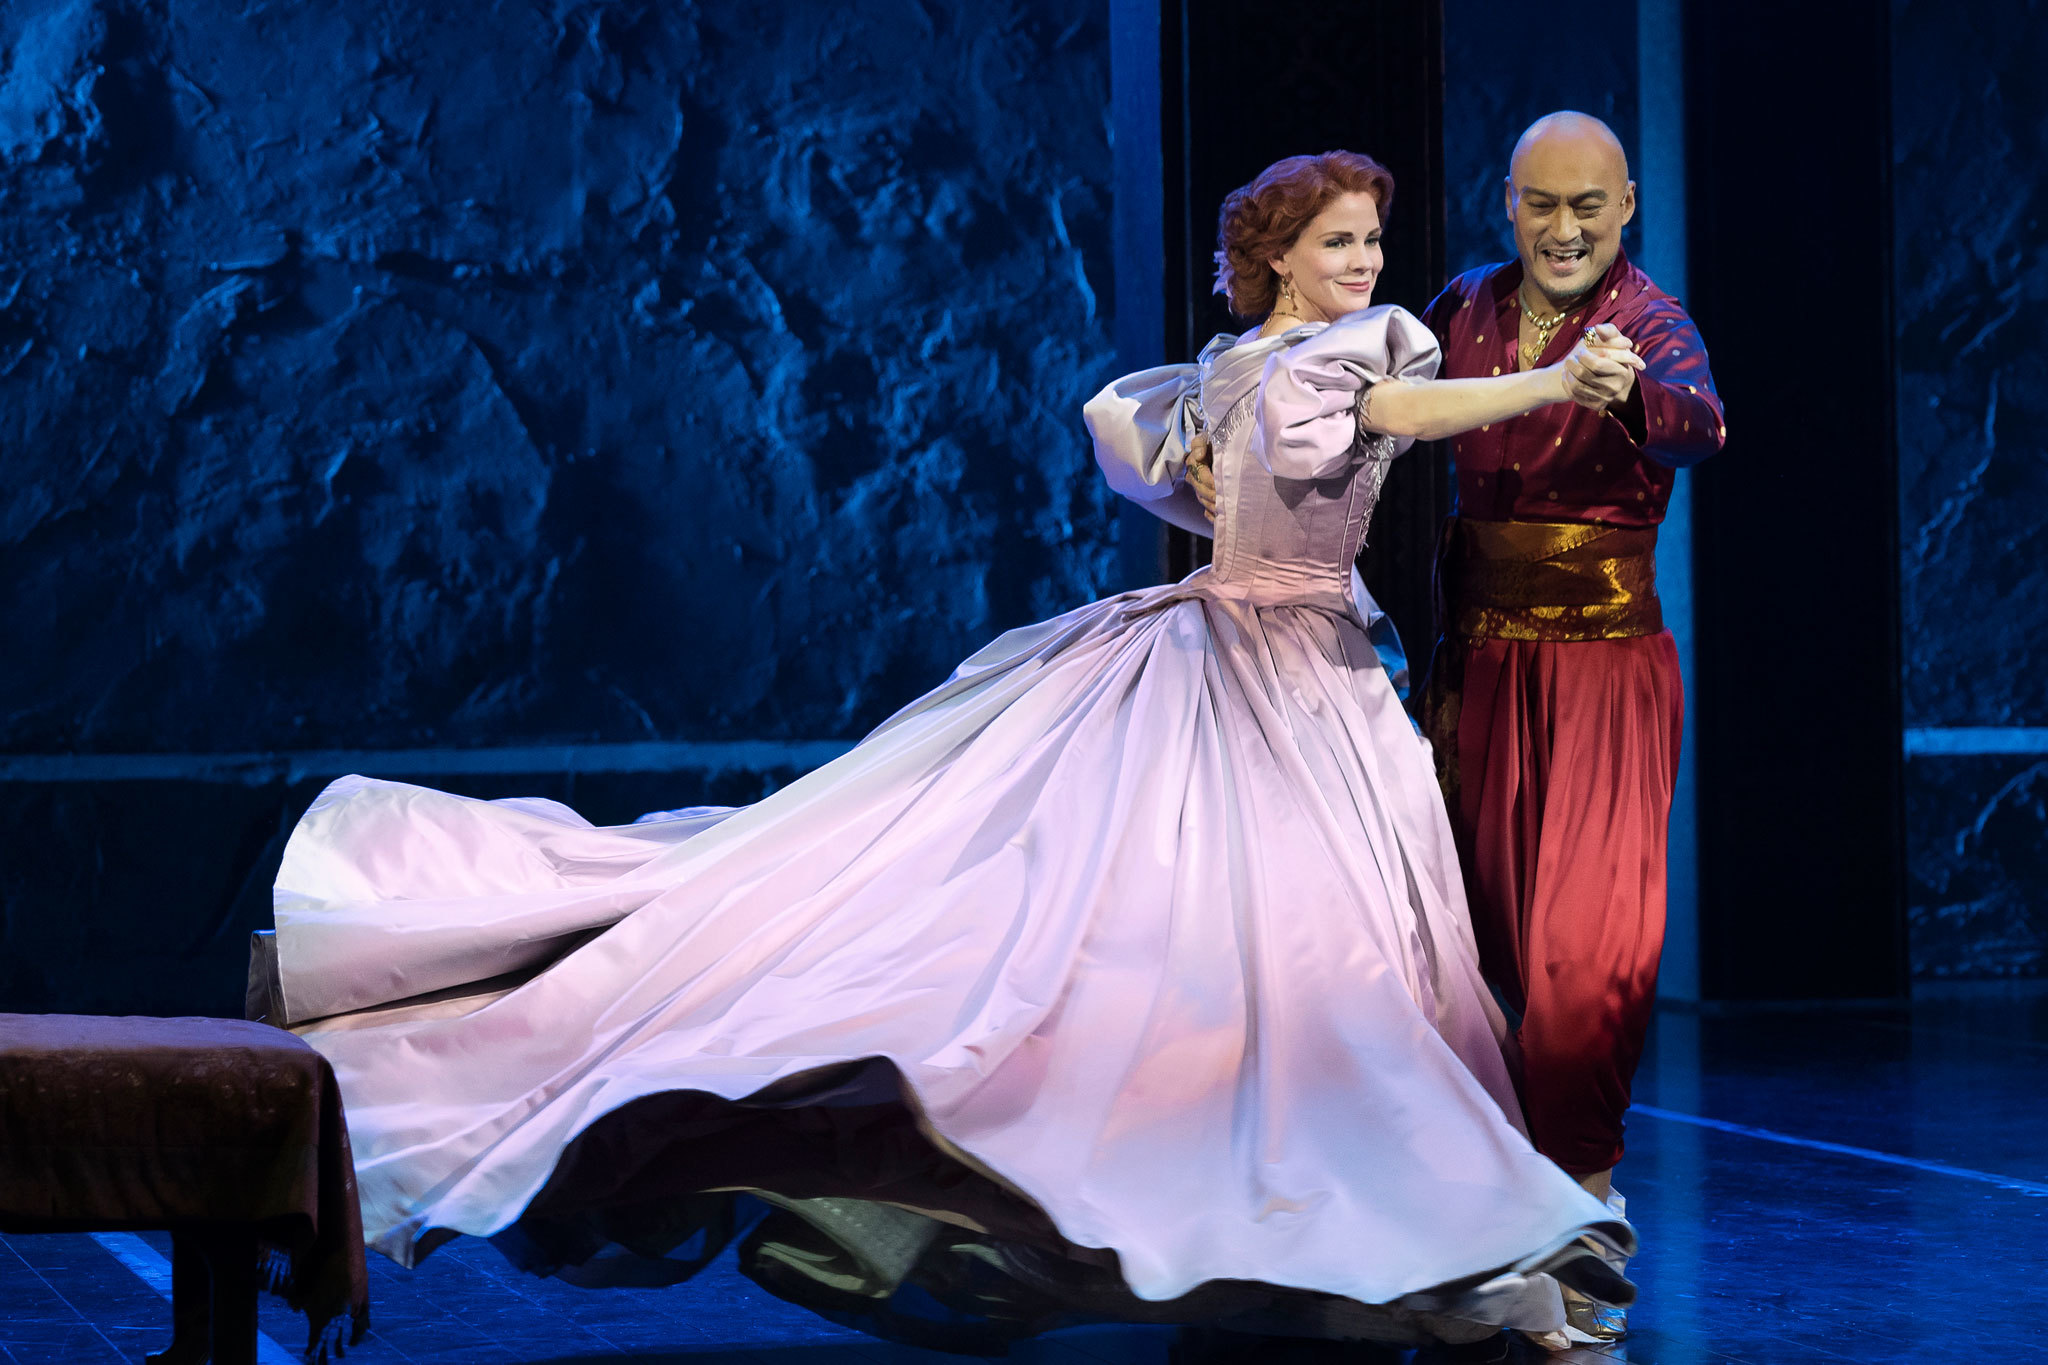 Best on Broadway: The King and I